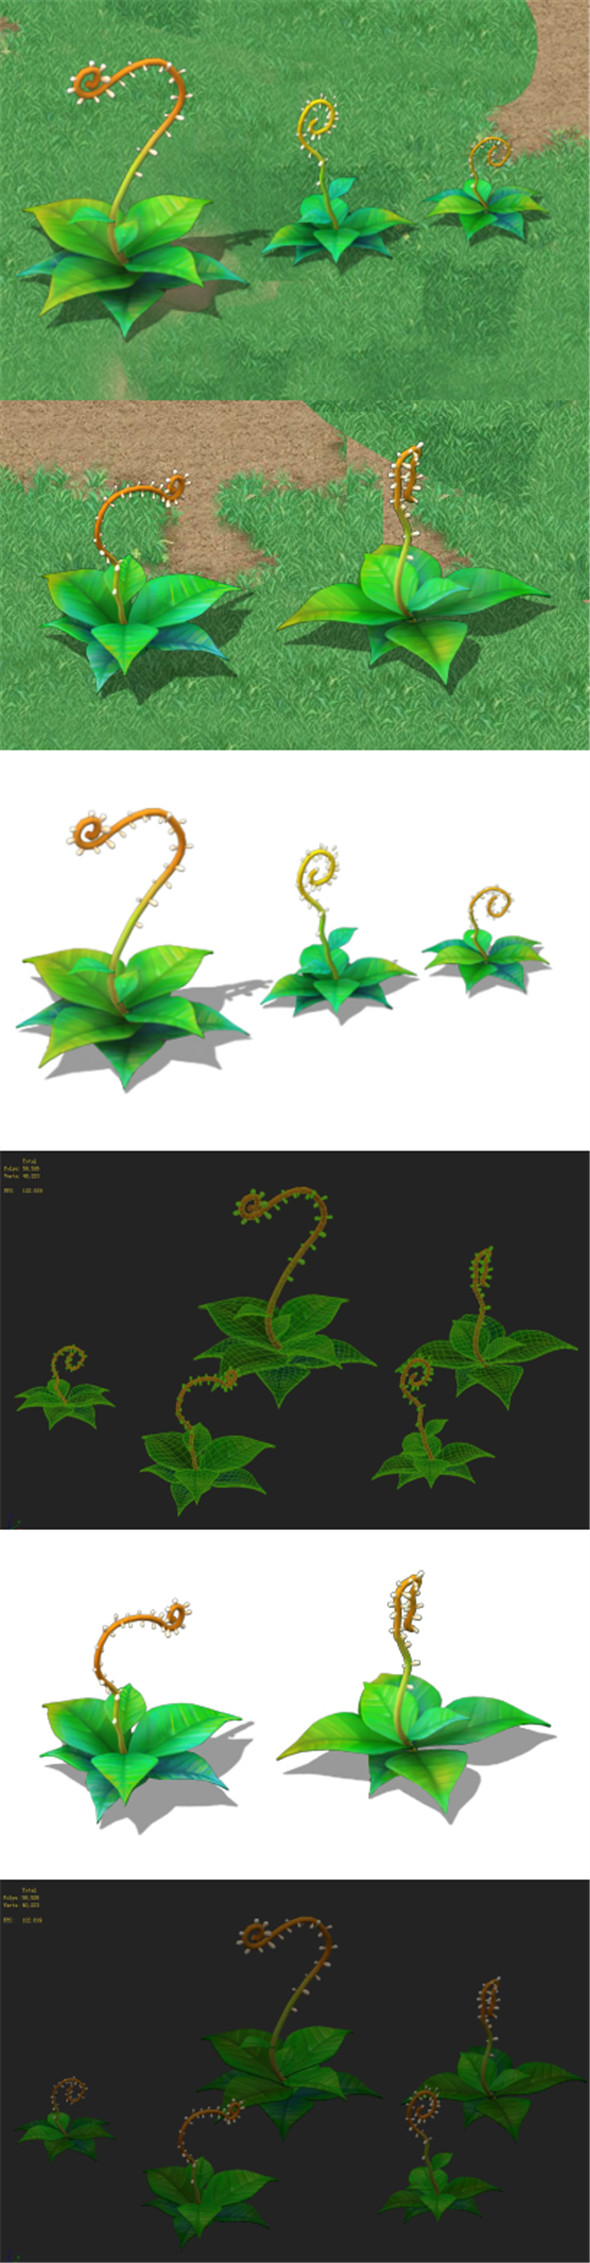 Cartoon version - moving tentacles grass - 3DOcean Item for Sale